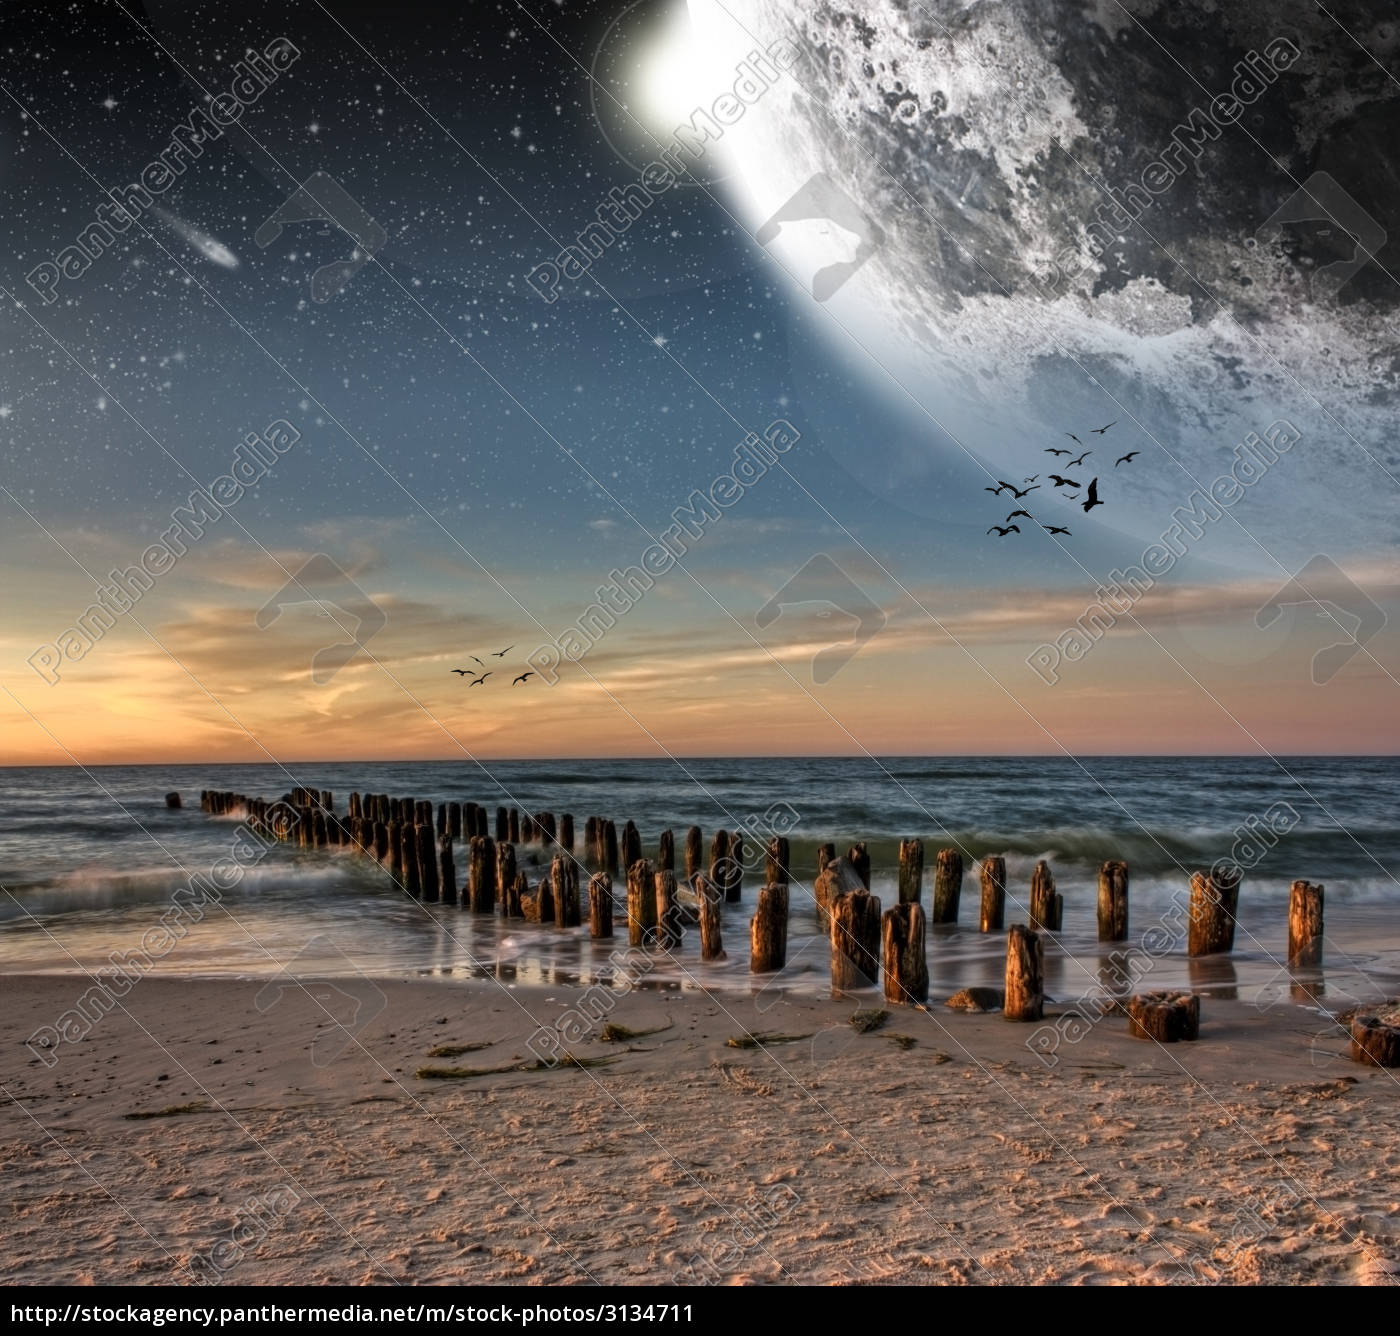 space, beach, seaside, the beach, seashore, moon - 3134711